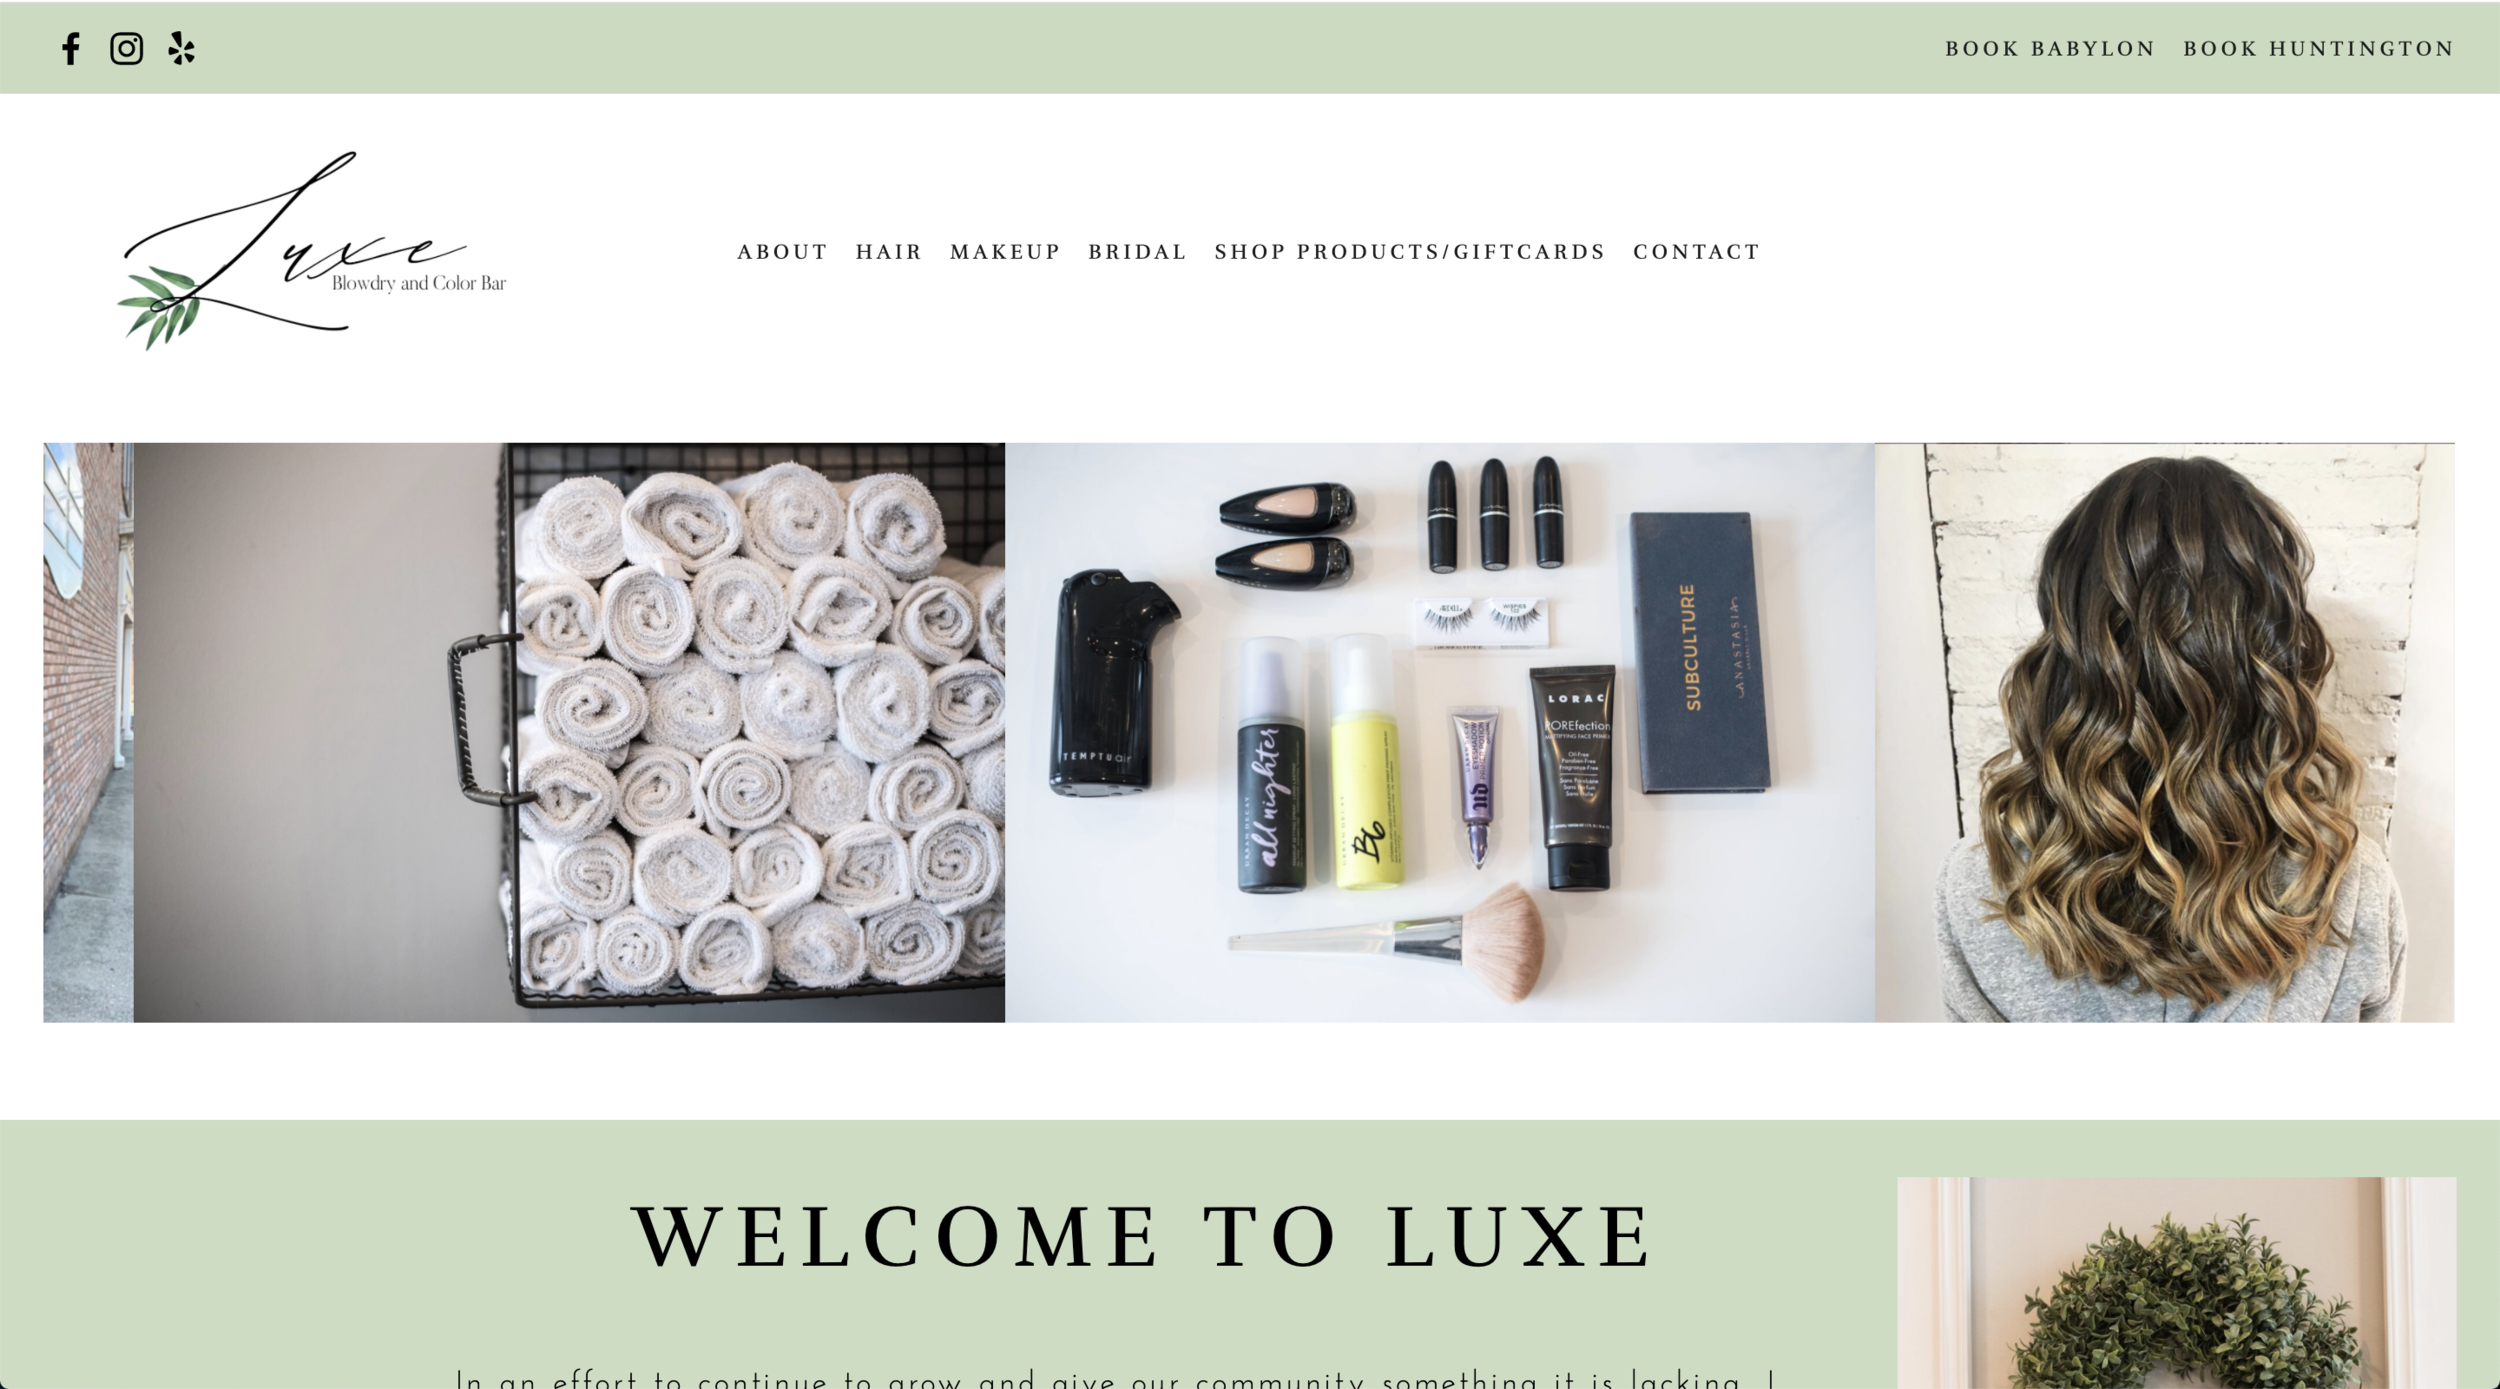 Luxe Blow Dry Bar - Emily R. Fitzgibbon, LLC - Web Design